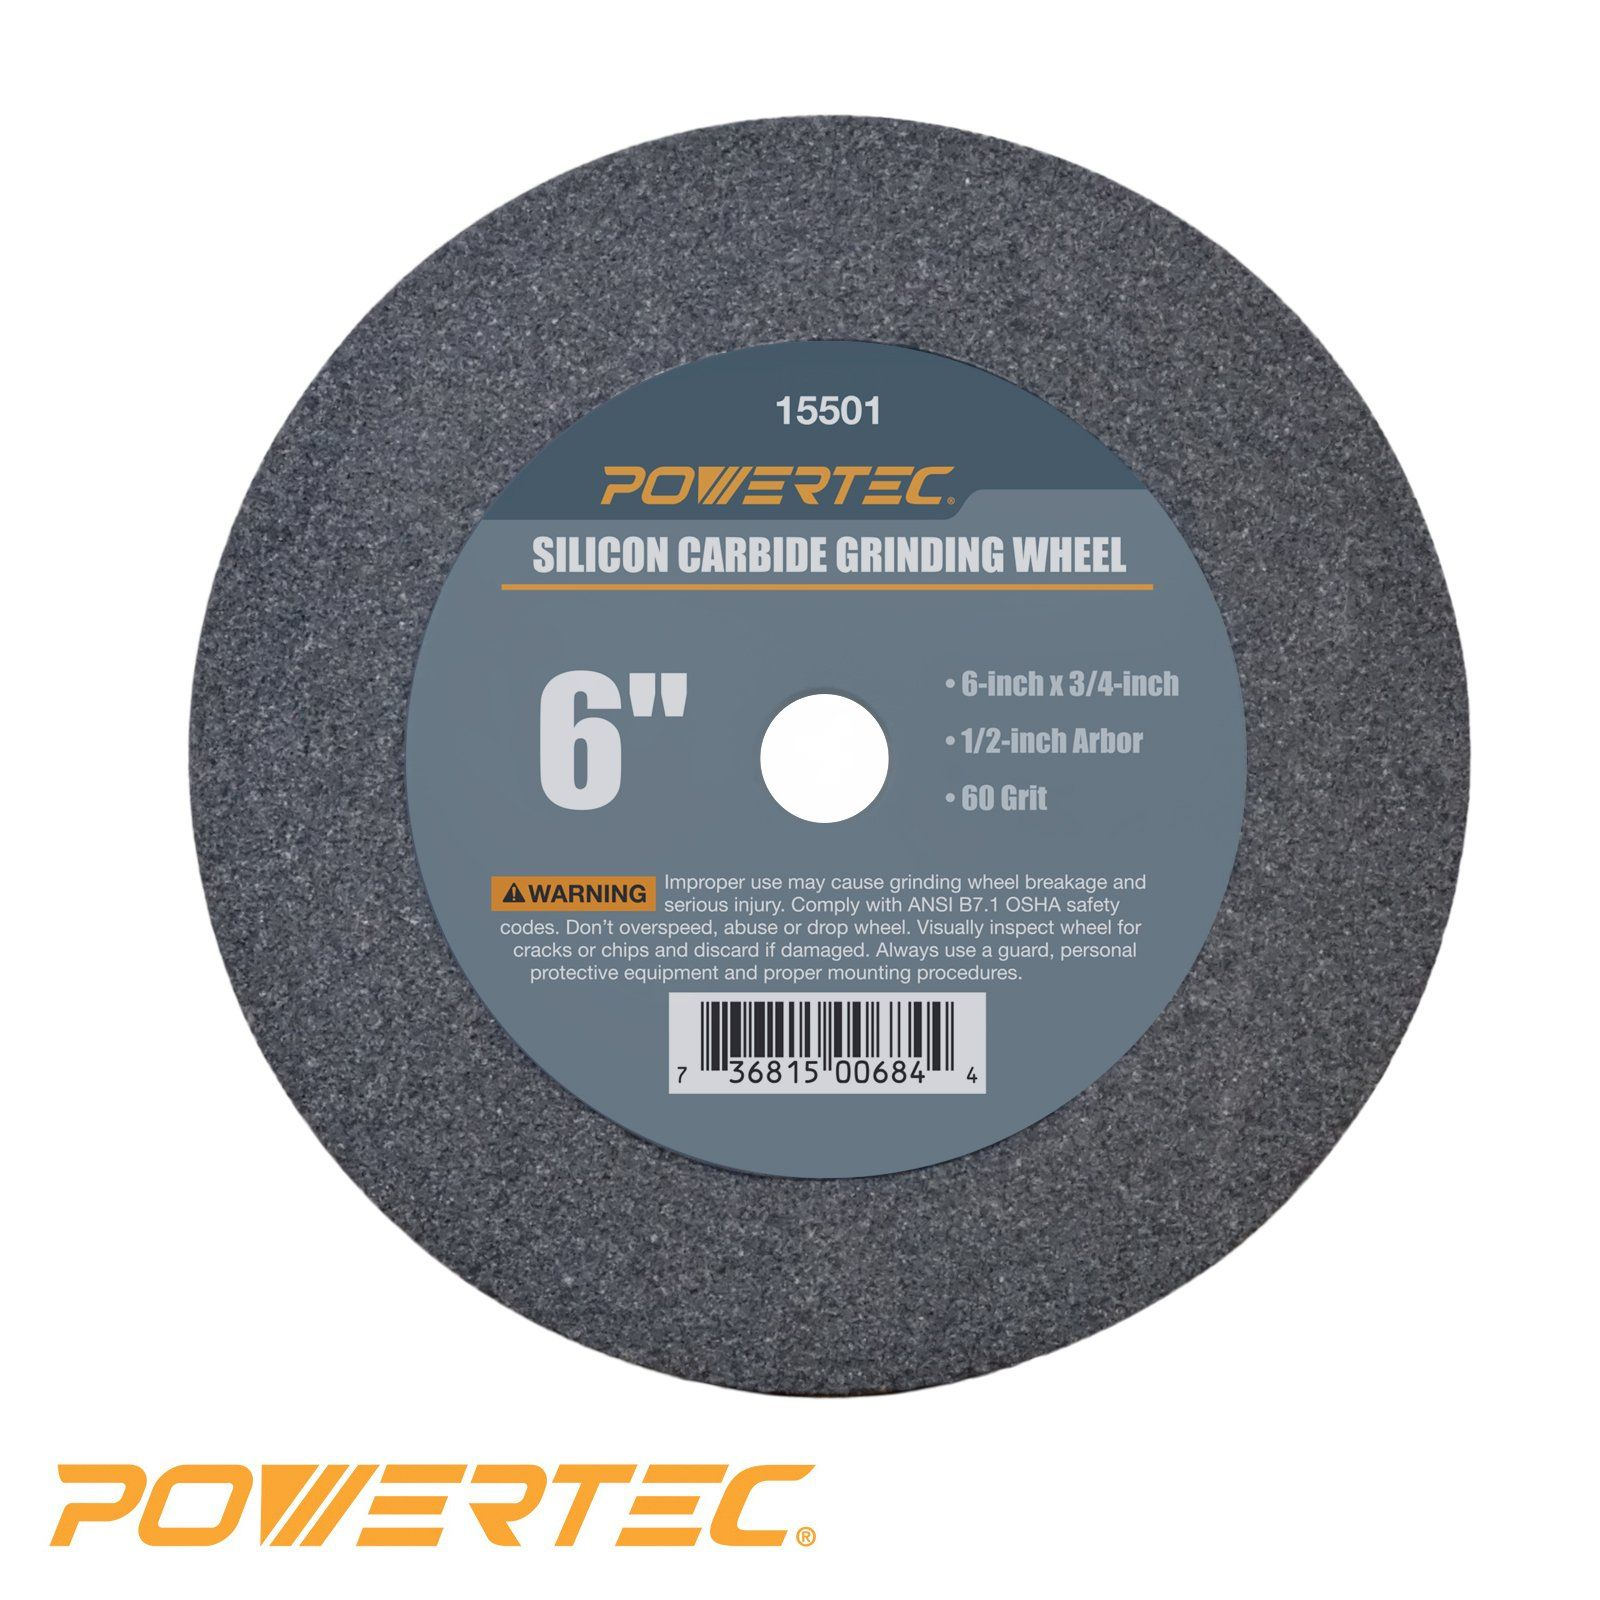 Powertec 15501 1 2 Arbor 60 Grit Silicon Carbide Grinding Wheel 6 By 3 4 Ad Arbor Affiliate Powertec Grit Grindin Silicon Carbide Job Shop Grind